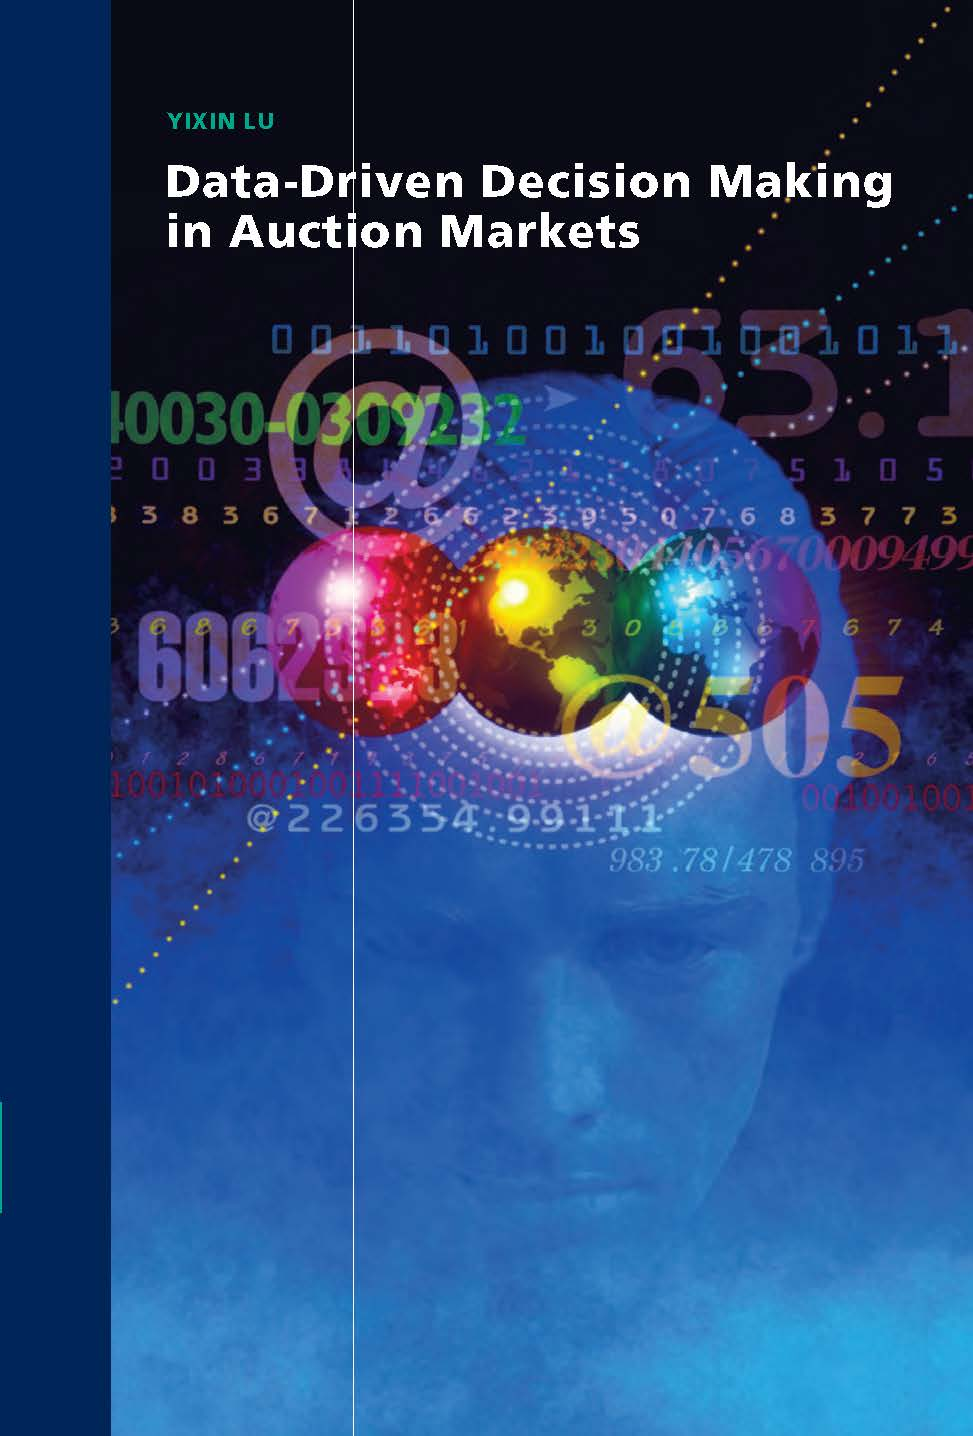 Data-Driven Decision Making in Auction Markets